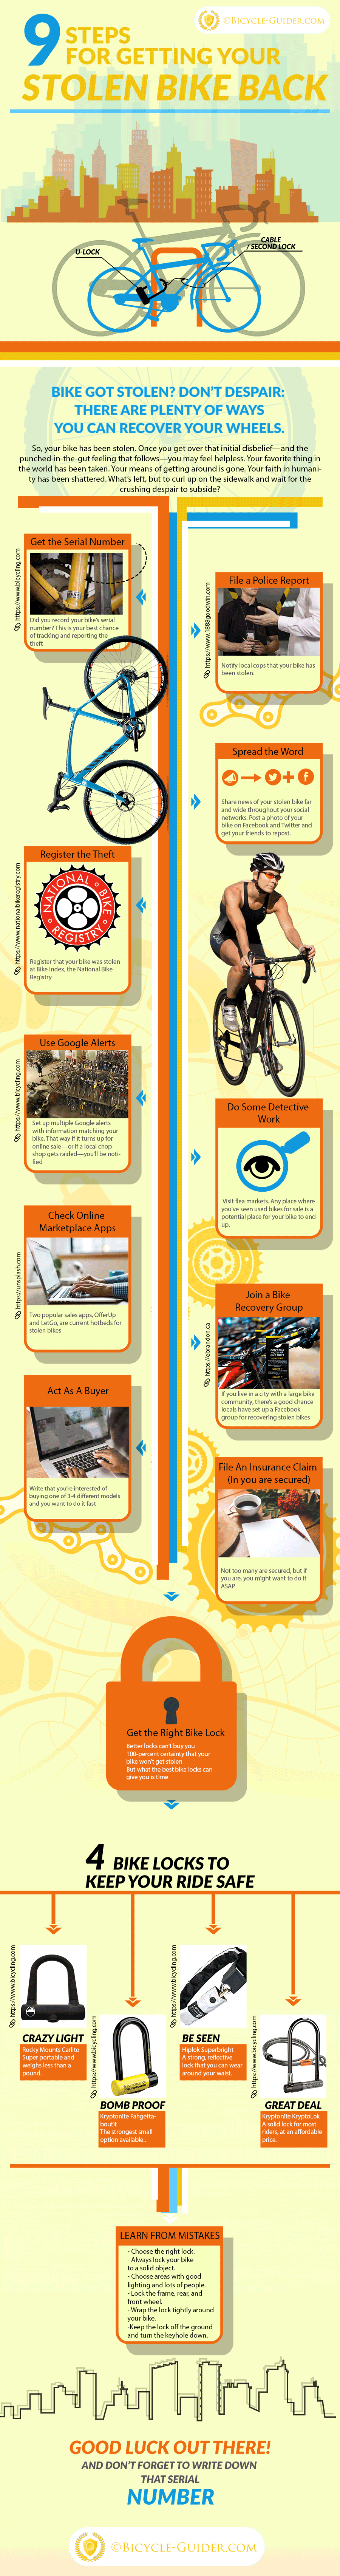 How to get your stolen bike back - infographic